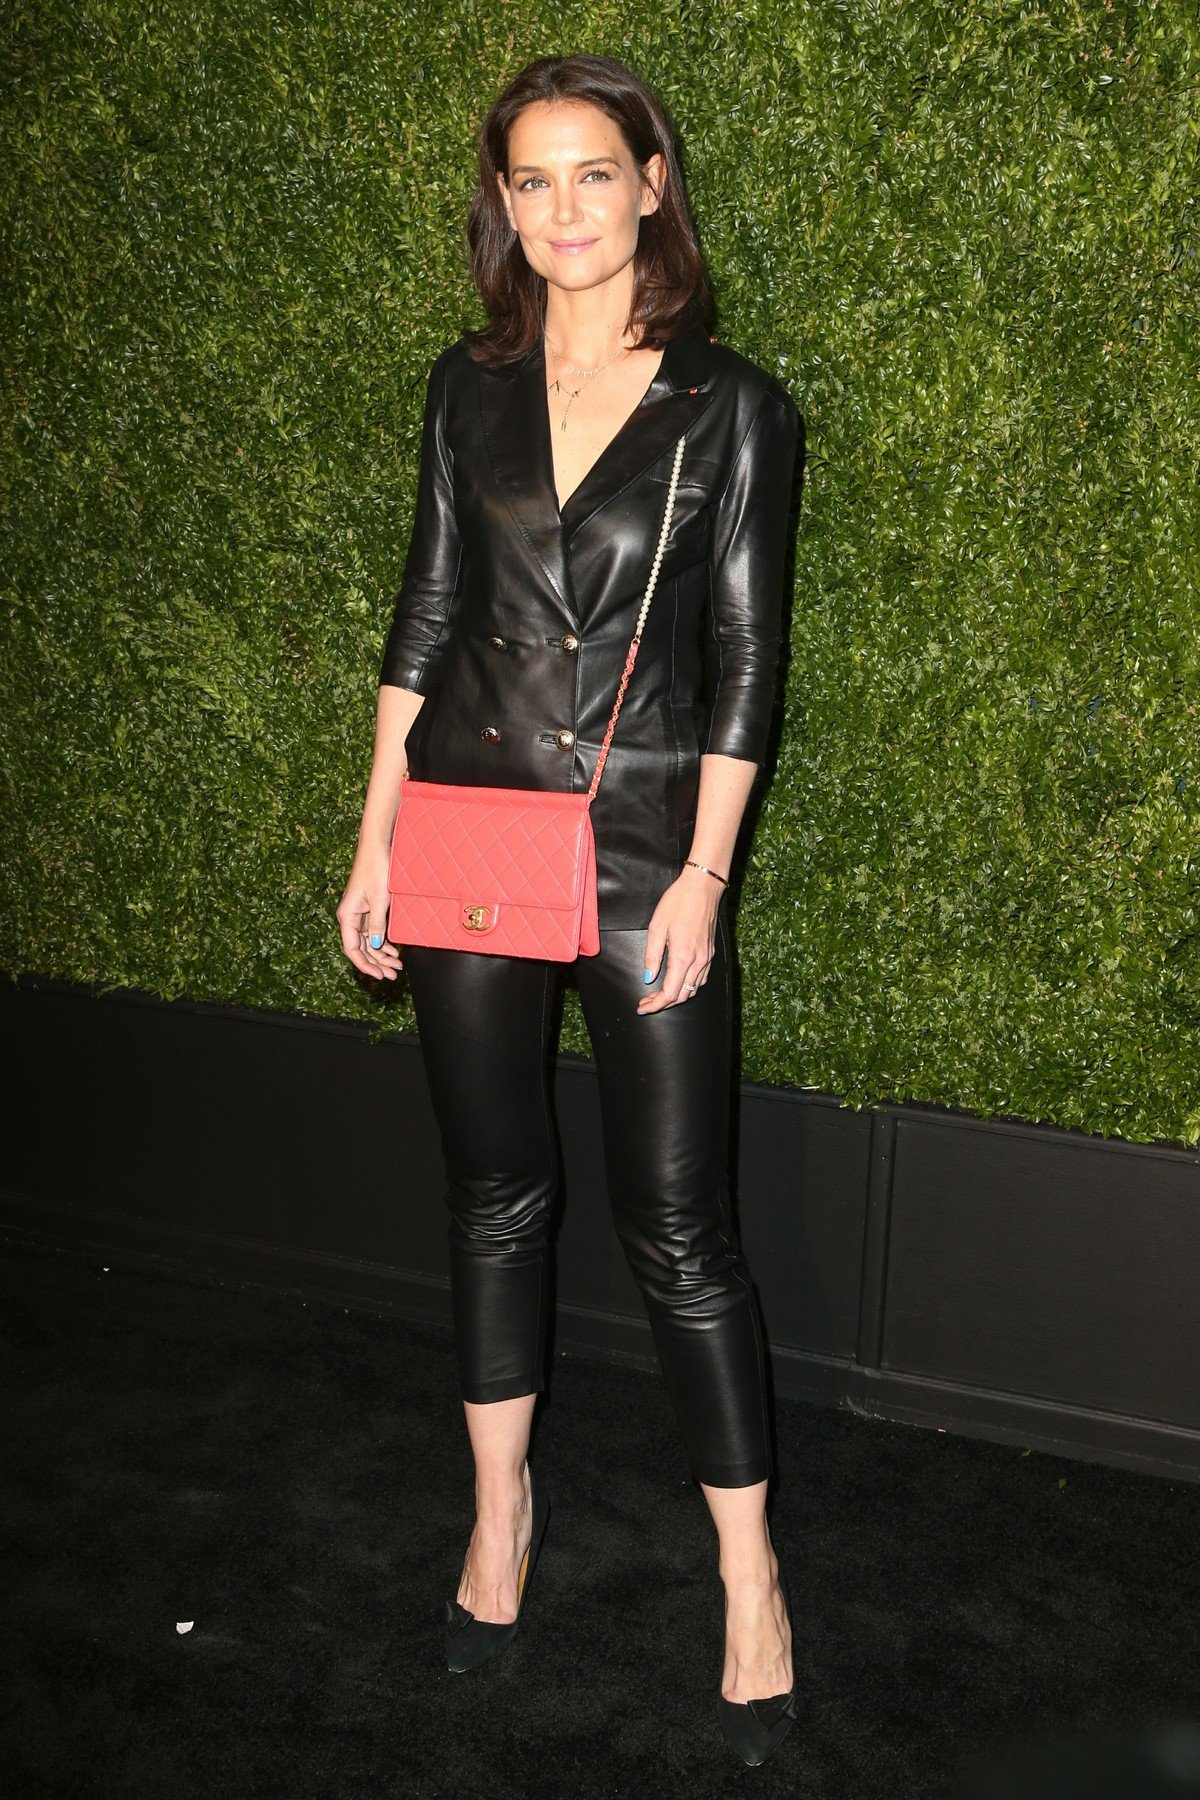 , New York, NY - 20190429 Celebrities arrive for the annual Tribeca Film Festival Artists Dinner hosted by Chanel.  -PICTURED: Katie Holmes -, Image: 429713046, License: Rights-managed, Restrictions: , Model Release: no, Credit line: Profimedia, INSTAR Images